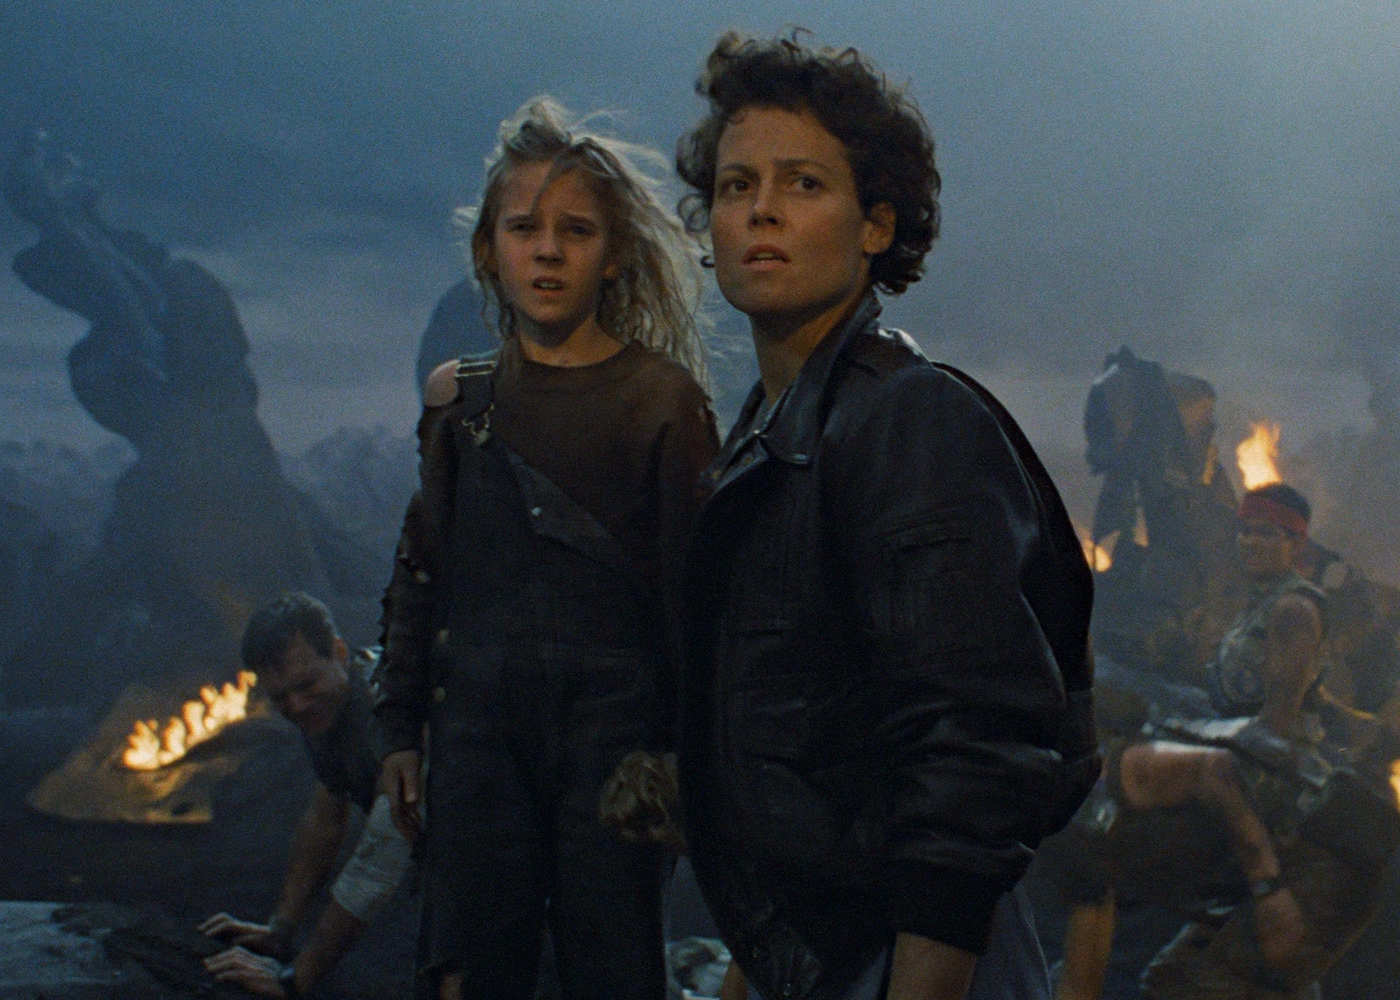 Alien 5 with Sigourney Weaver is Dead According to Neill Blomkamp